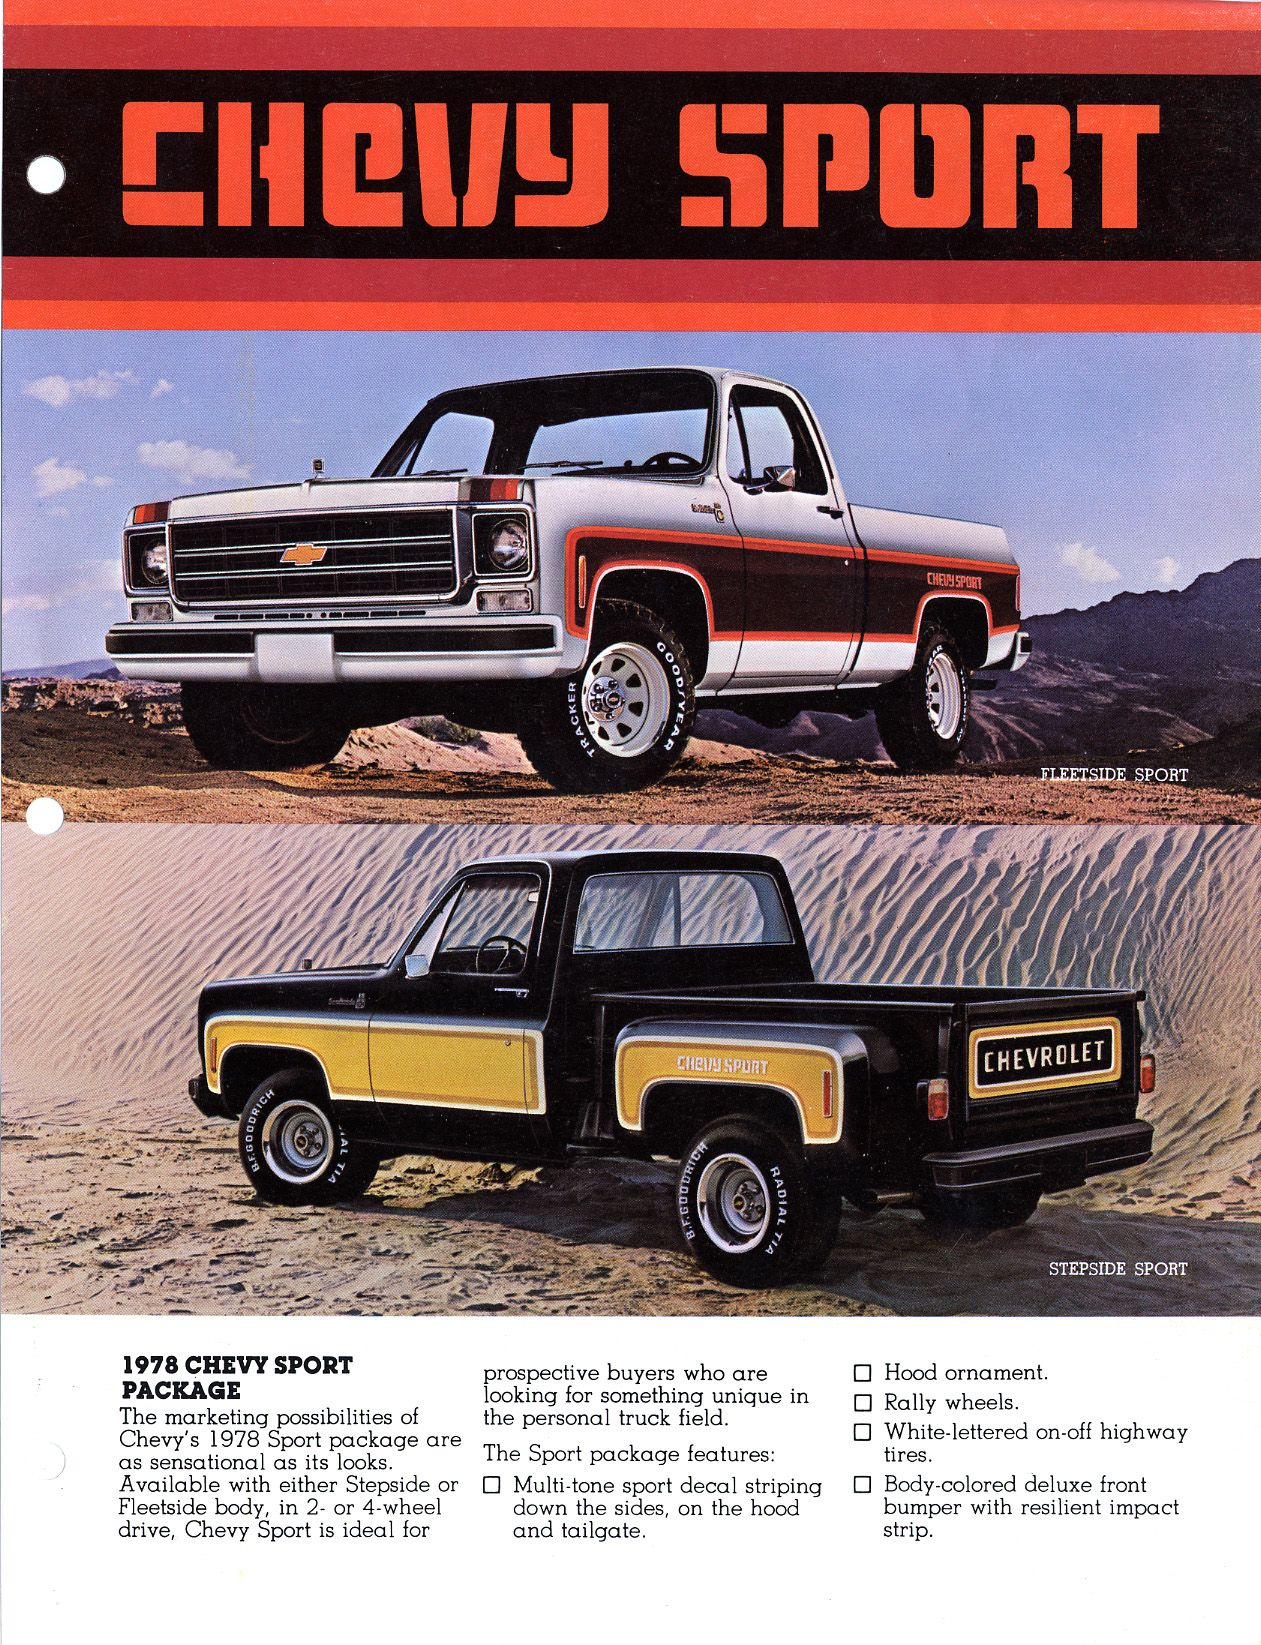 2 Tone Chevy Truck : chevy, truck, Chevy, Sport, Looking, Pictures, 73-80, Stepsides, Factory, Pinstripes, Two-tone, Pa…, Chevrolet, Trucks,, Stepside